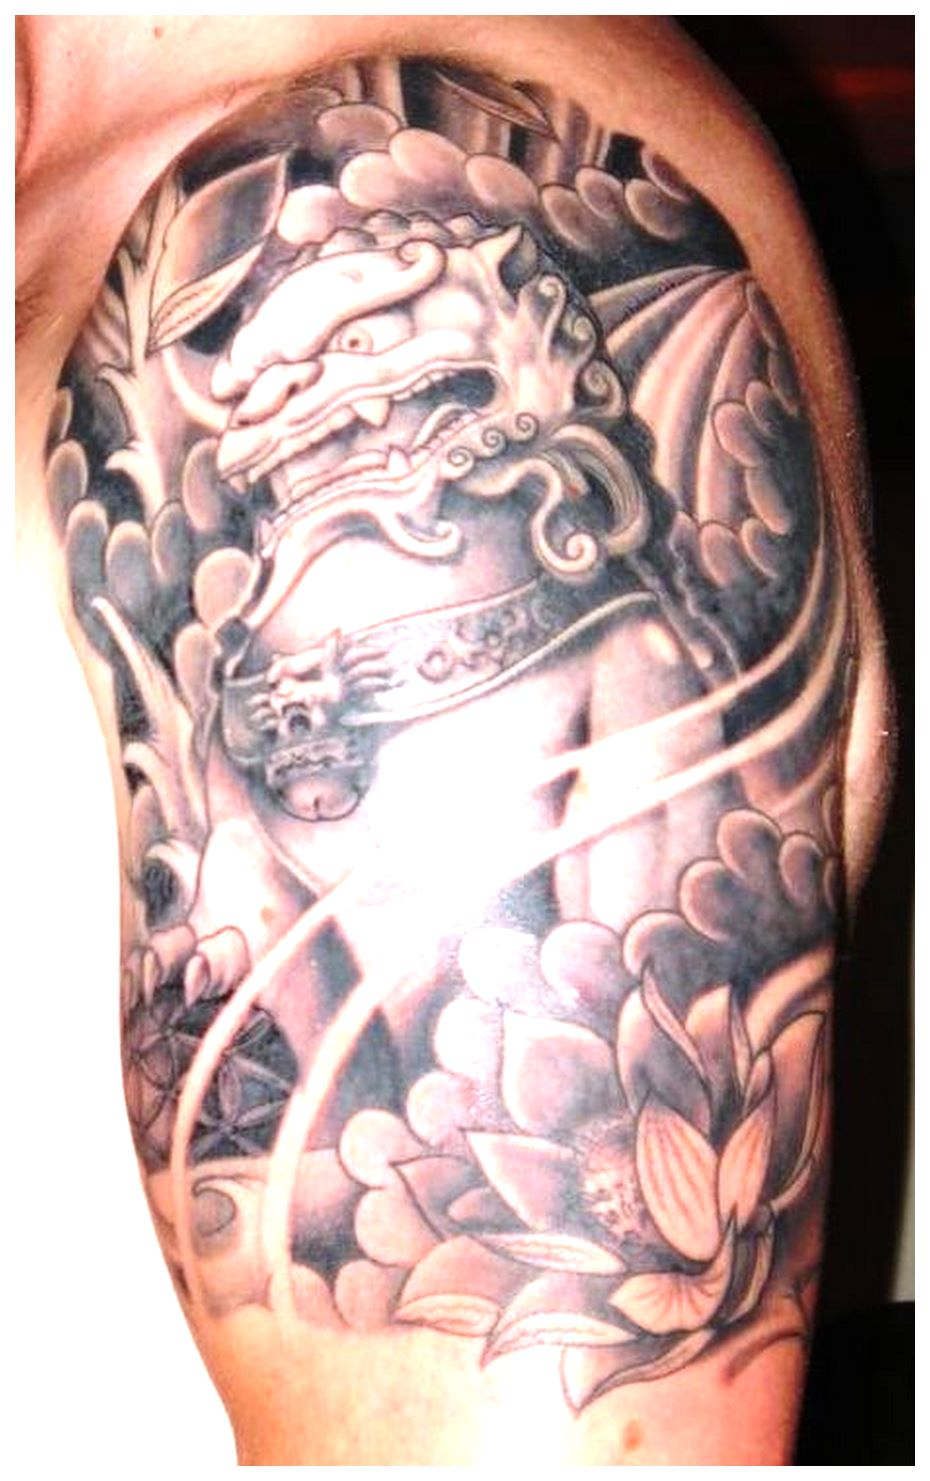 Foo dog tattoo sleeve